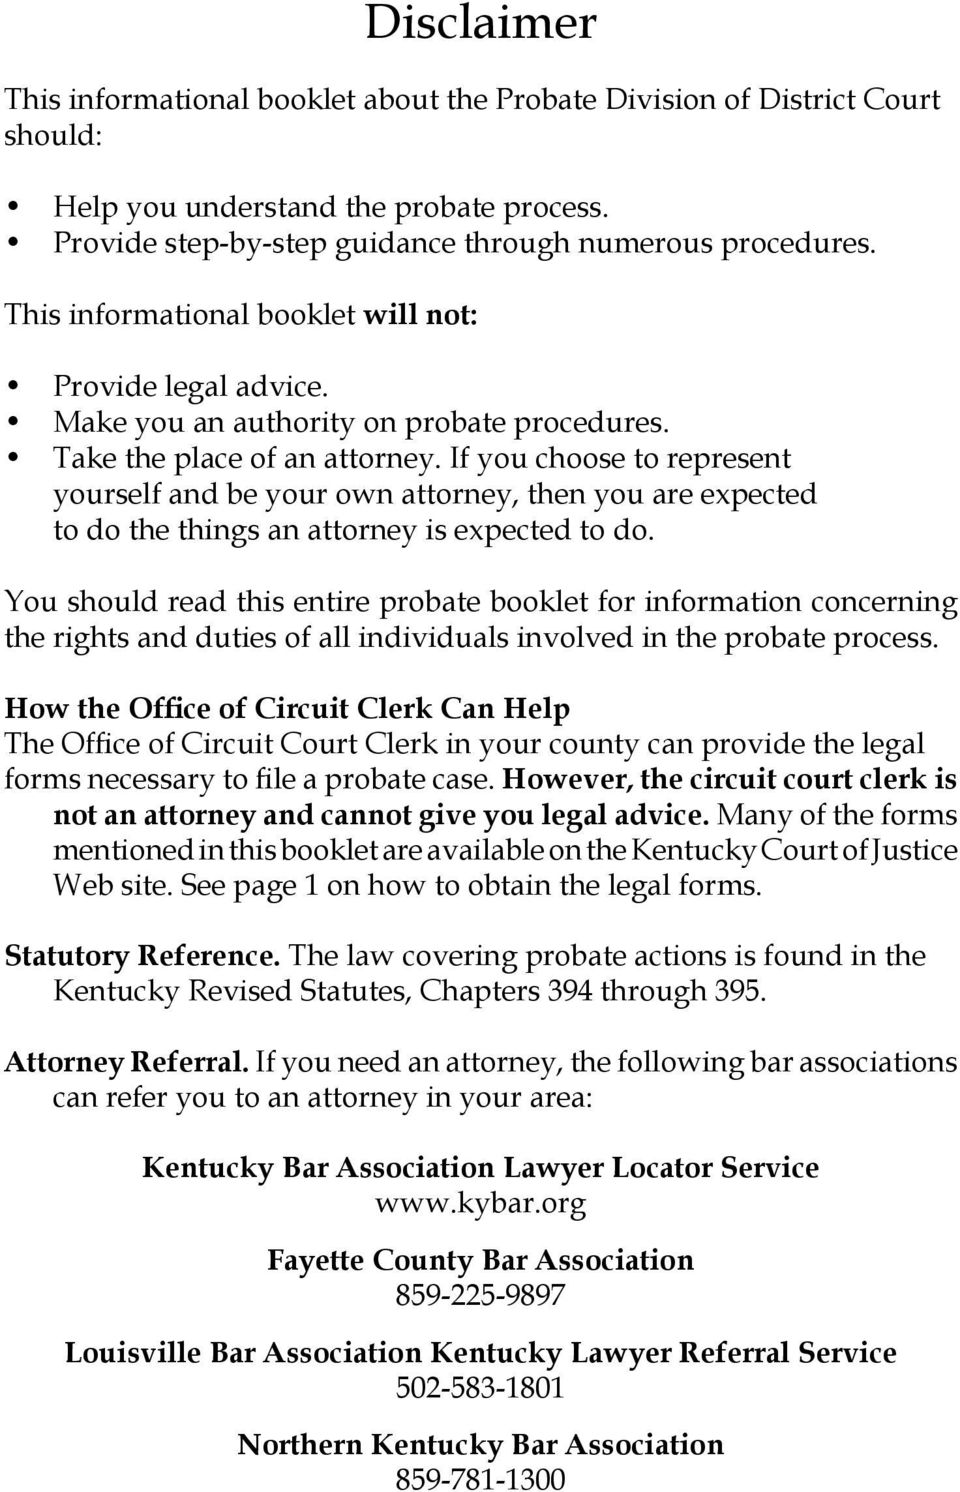 Guide to basic kentucky probate procedures pdf if you choose to represent yourself and be your own attorney then you are expected solutioingenieria Choice Image